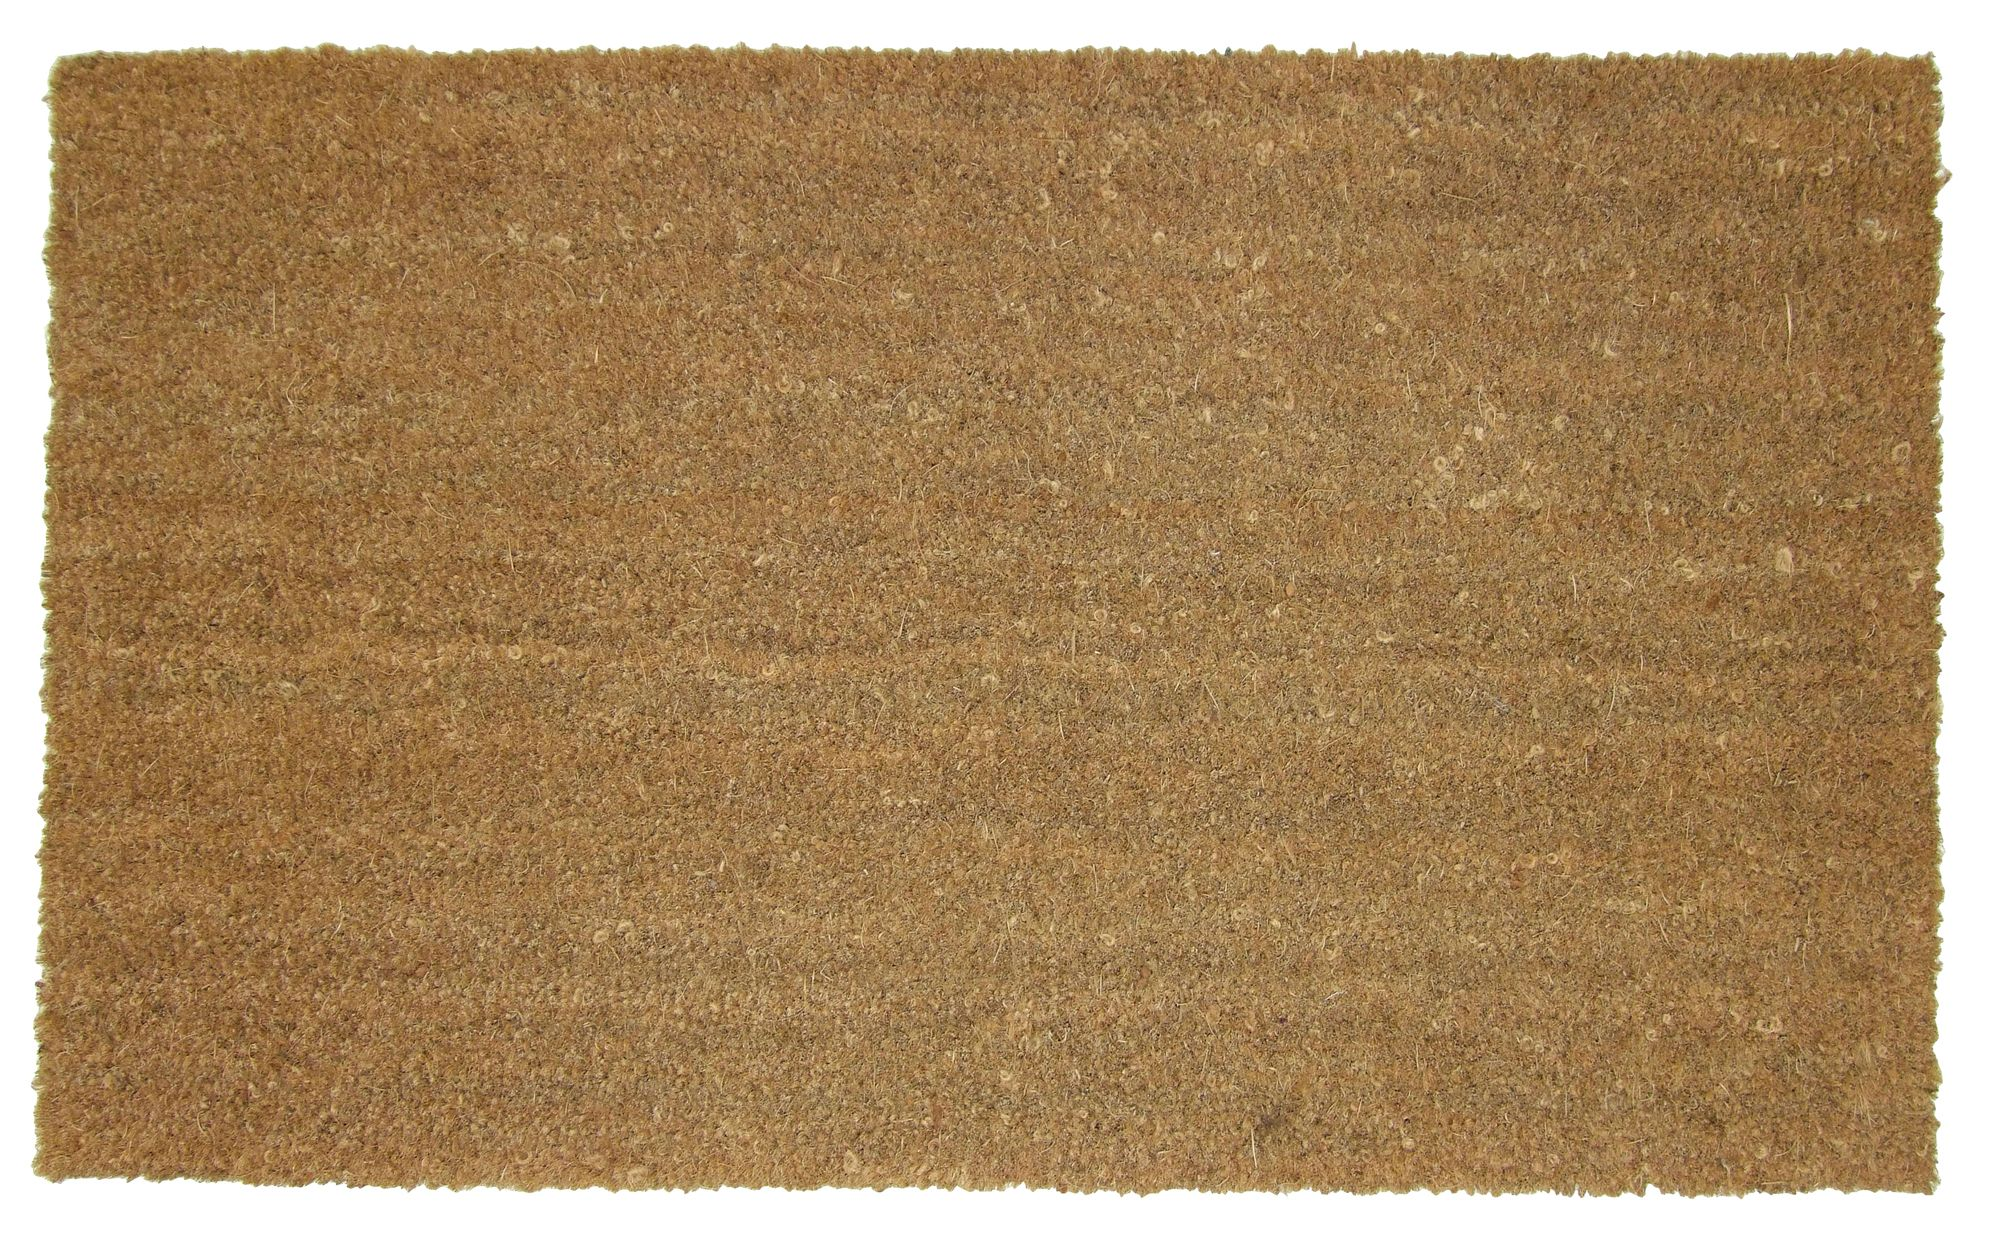 Awesome Diall Natural Plain Coir U0026 PVC Doormat (L)110cm (W)80cm | Departments | DIY  At Bu0026Q